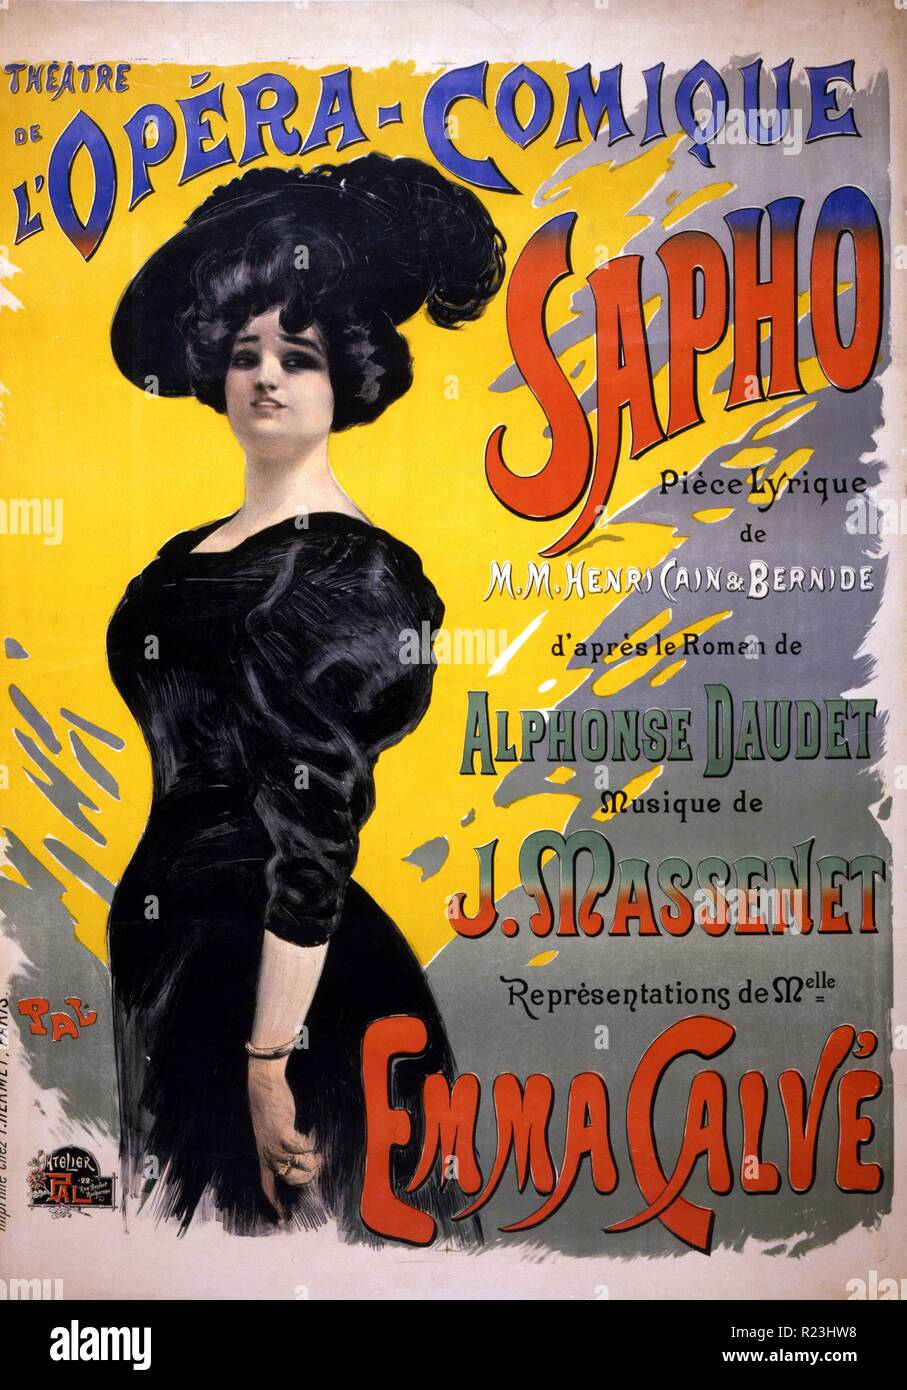 Sappho: Theatre de l'Opera-Comique. Performing arts poster for a performance of a comic opera by Henri Cain and Arthur Bernede, with music by Jules Massenet and based on a novel by Alphonse Daudet, showing Emma Calve as Fanny LeGrand. 1897 Stock Photo